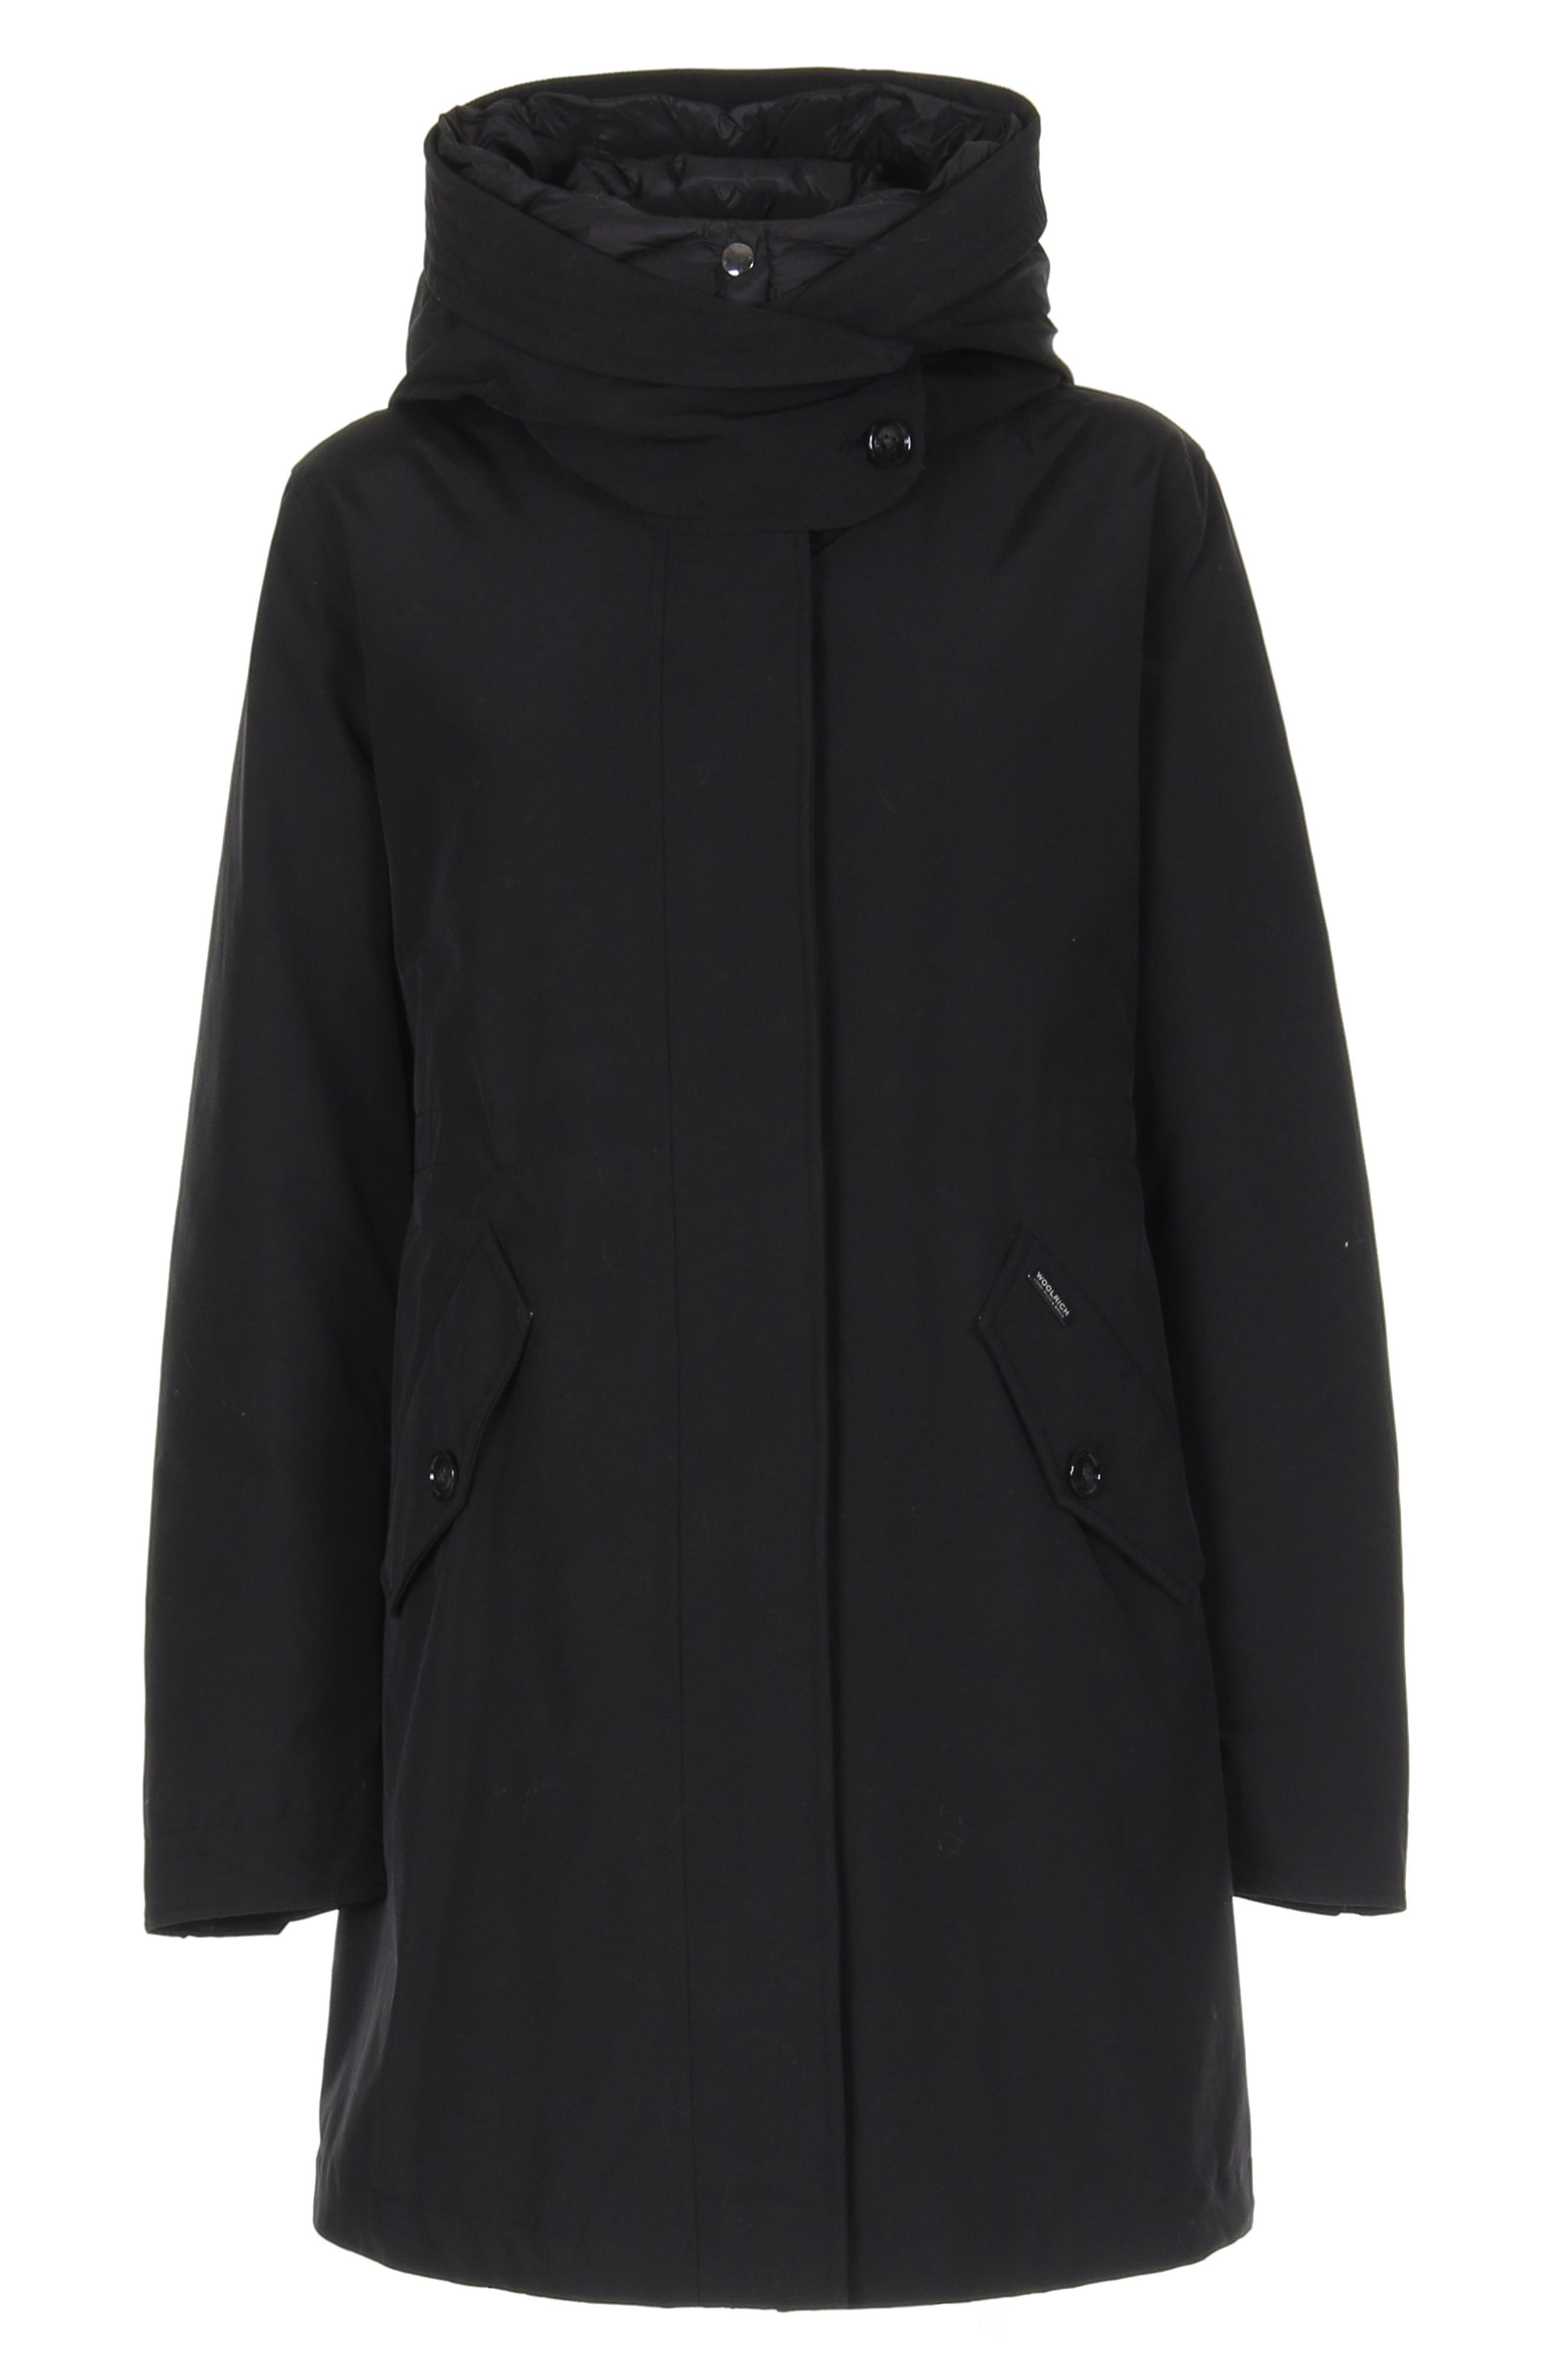 WOOLRICH, Long Military 3-in-1 Parka, Alternate thumbnail 11, color, 001